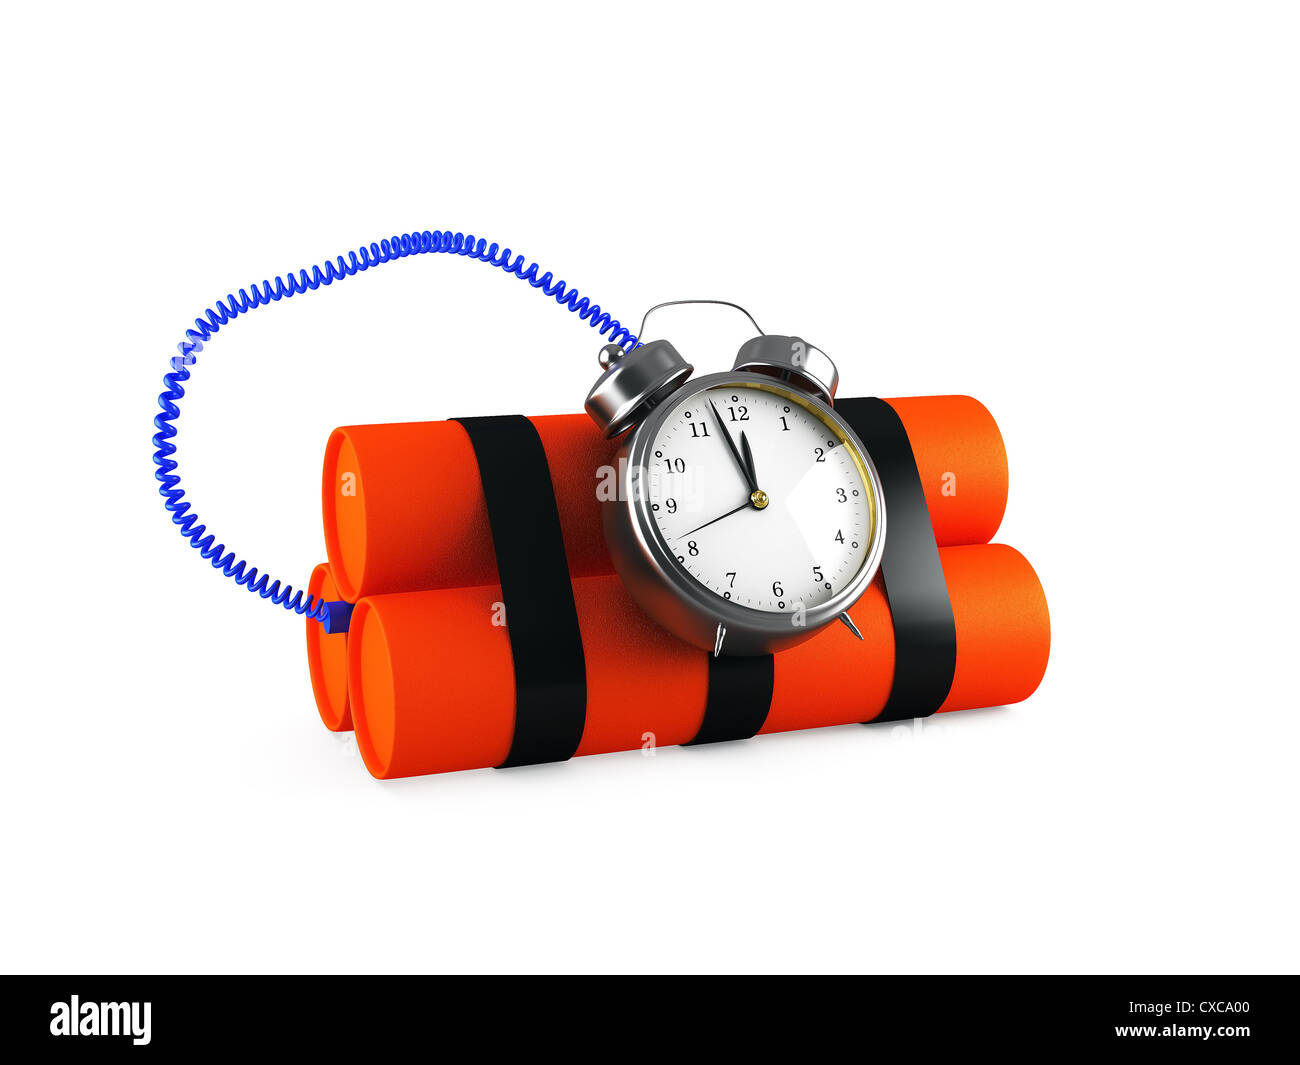 Timebomb made of dynamite isolated on white 3d render - Stock Image